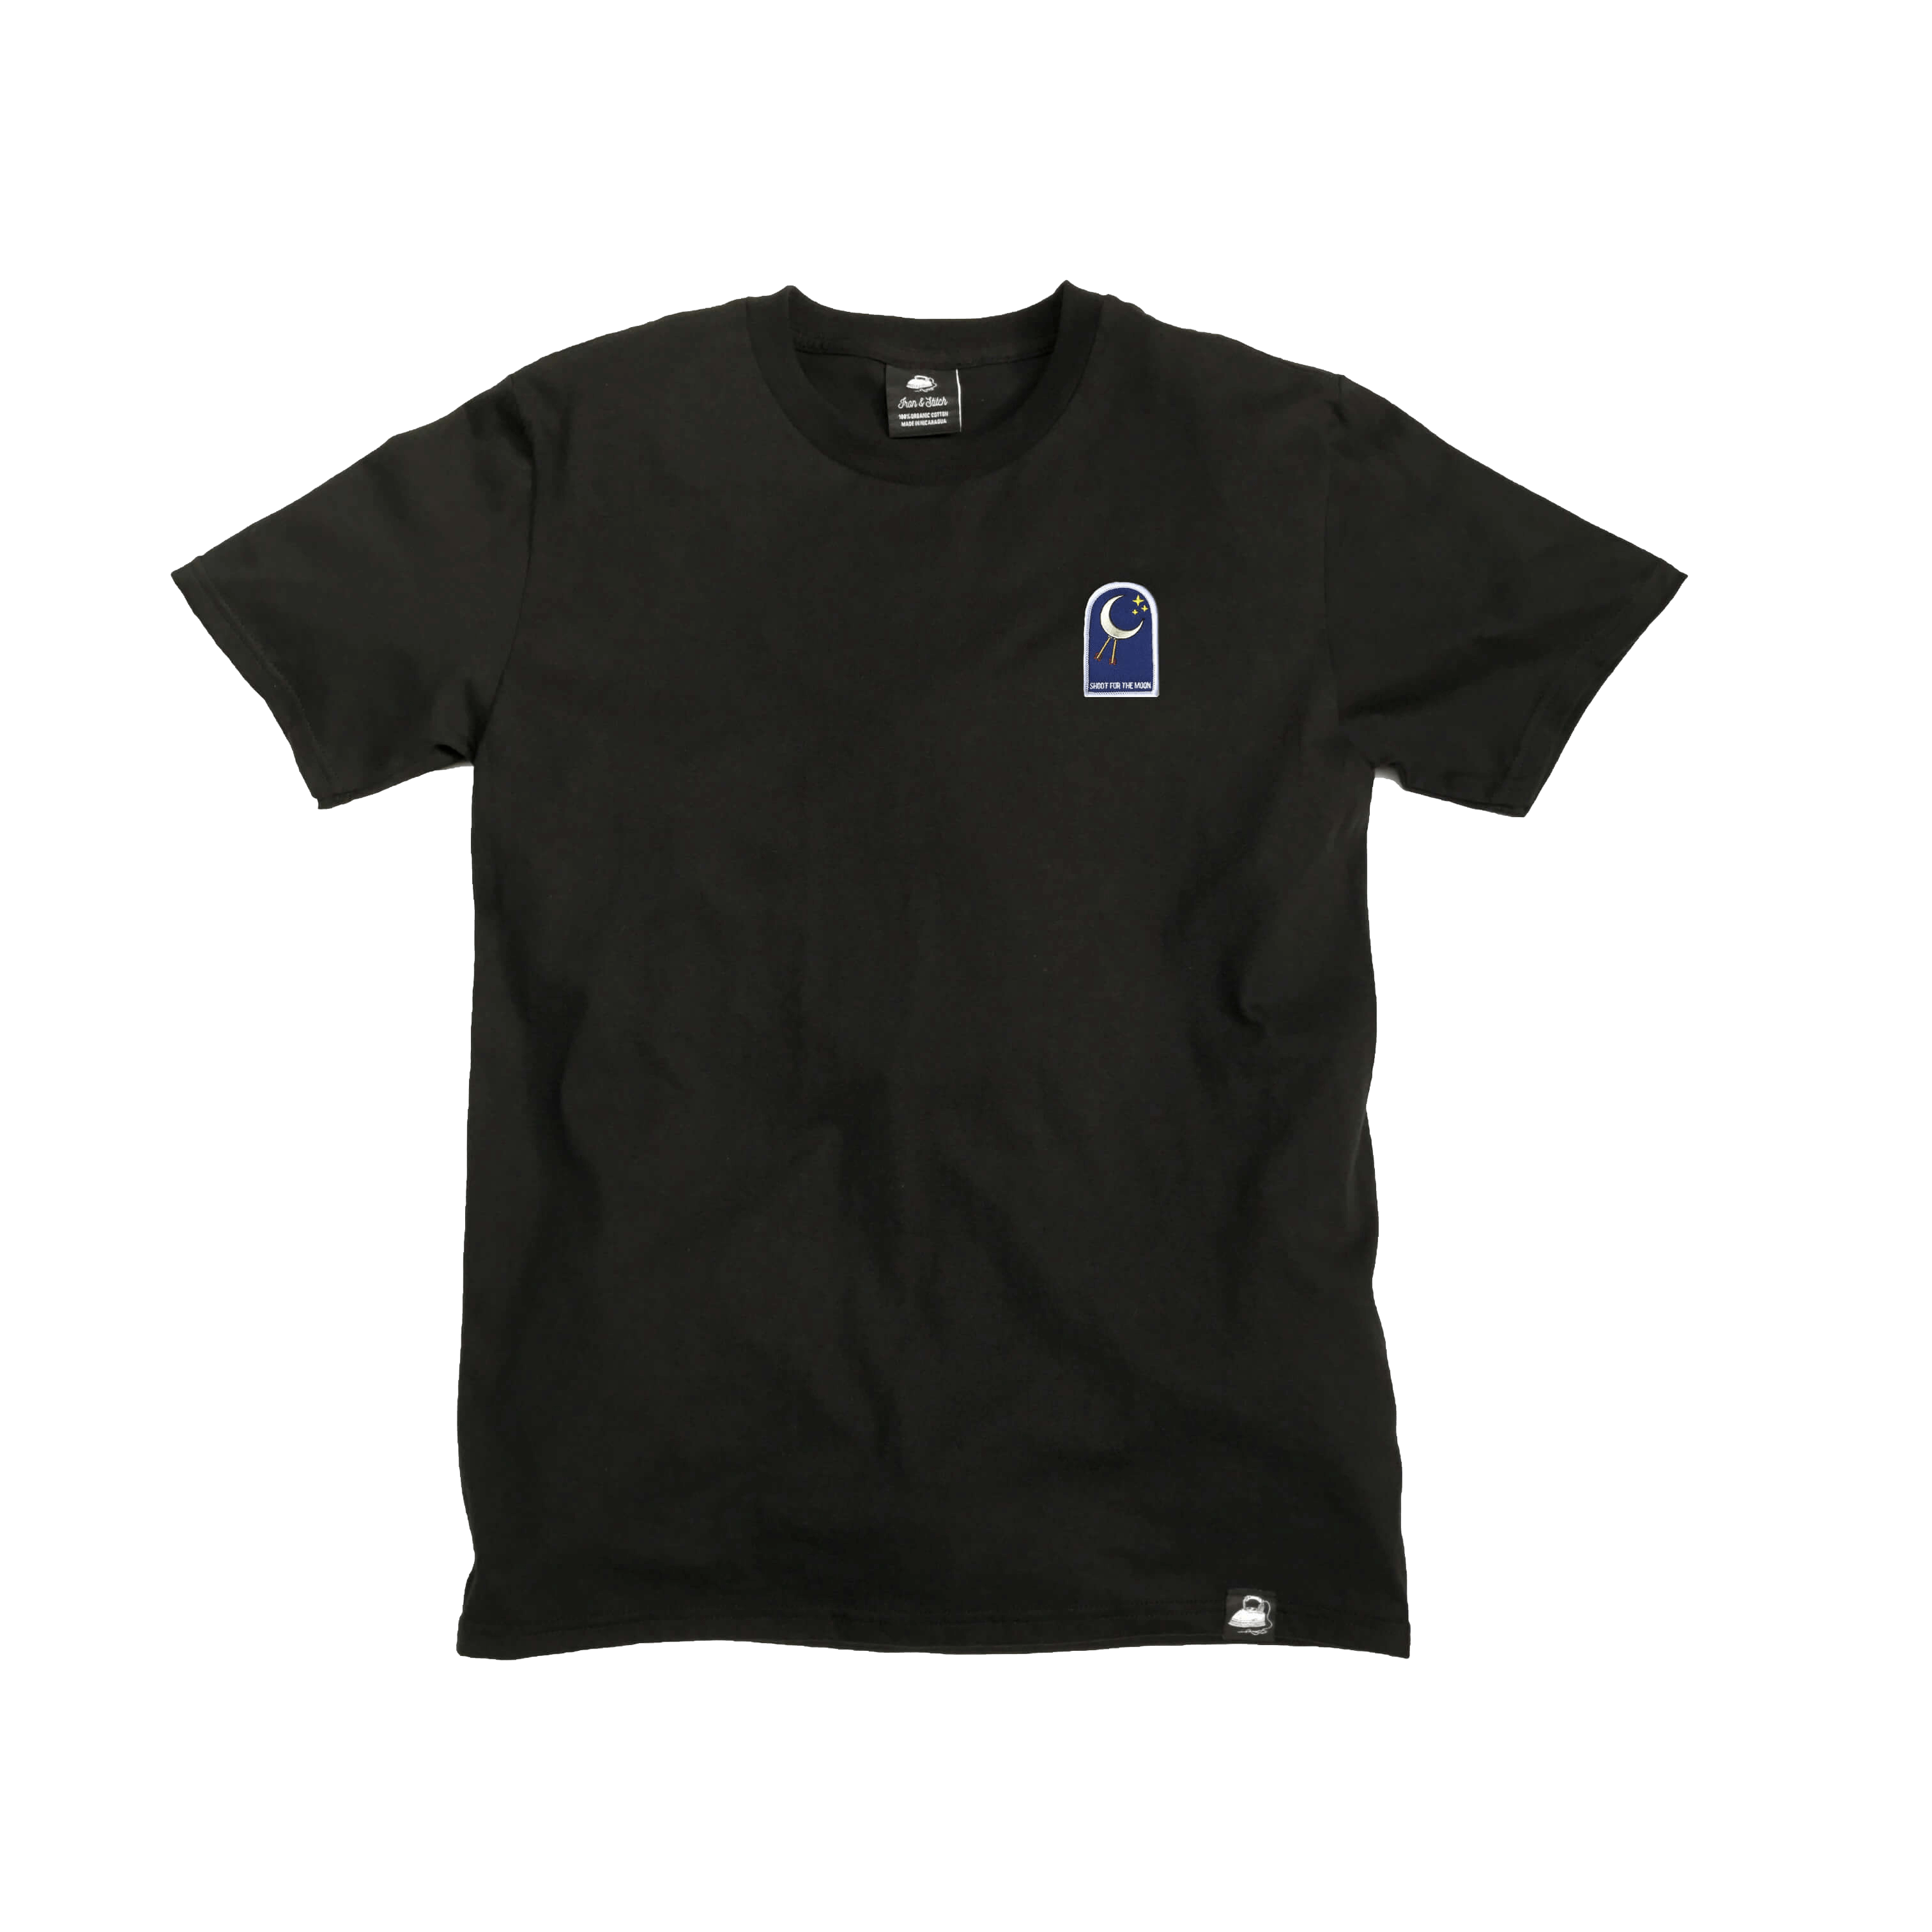 Black Organic Cotton Tee + Shoot For The Moon Patch (L) - Iron & Stitch